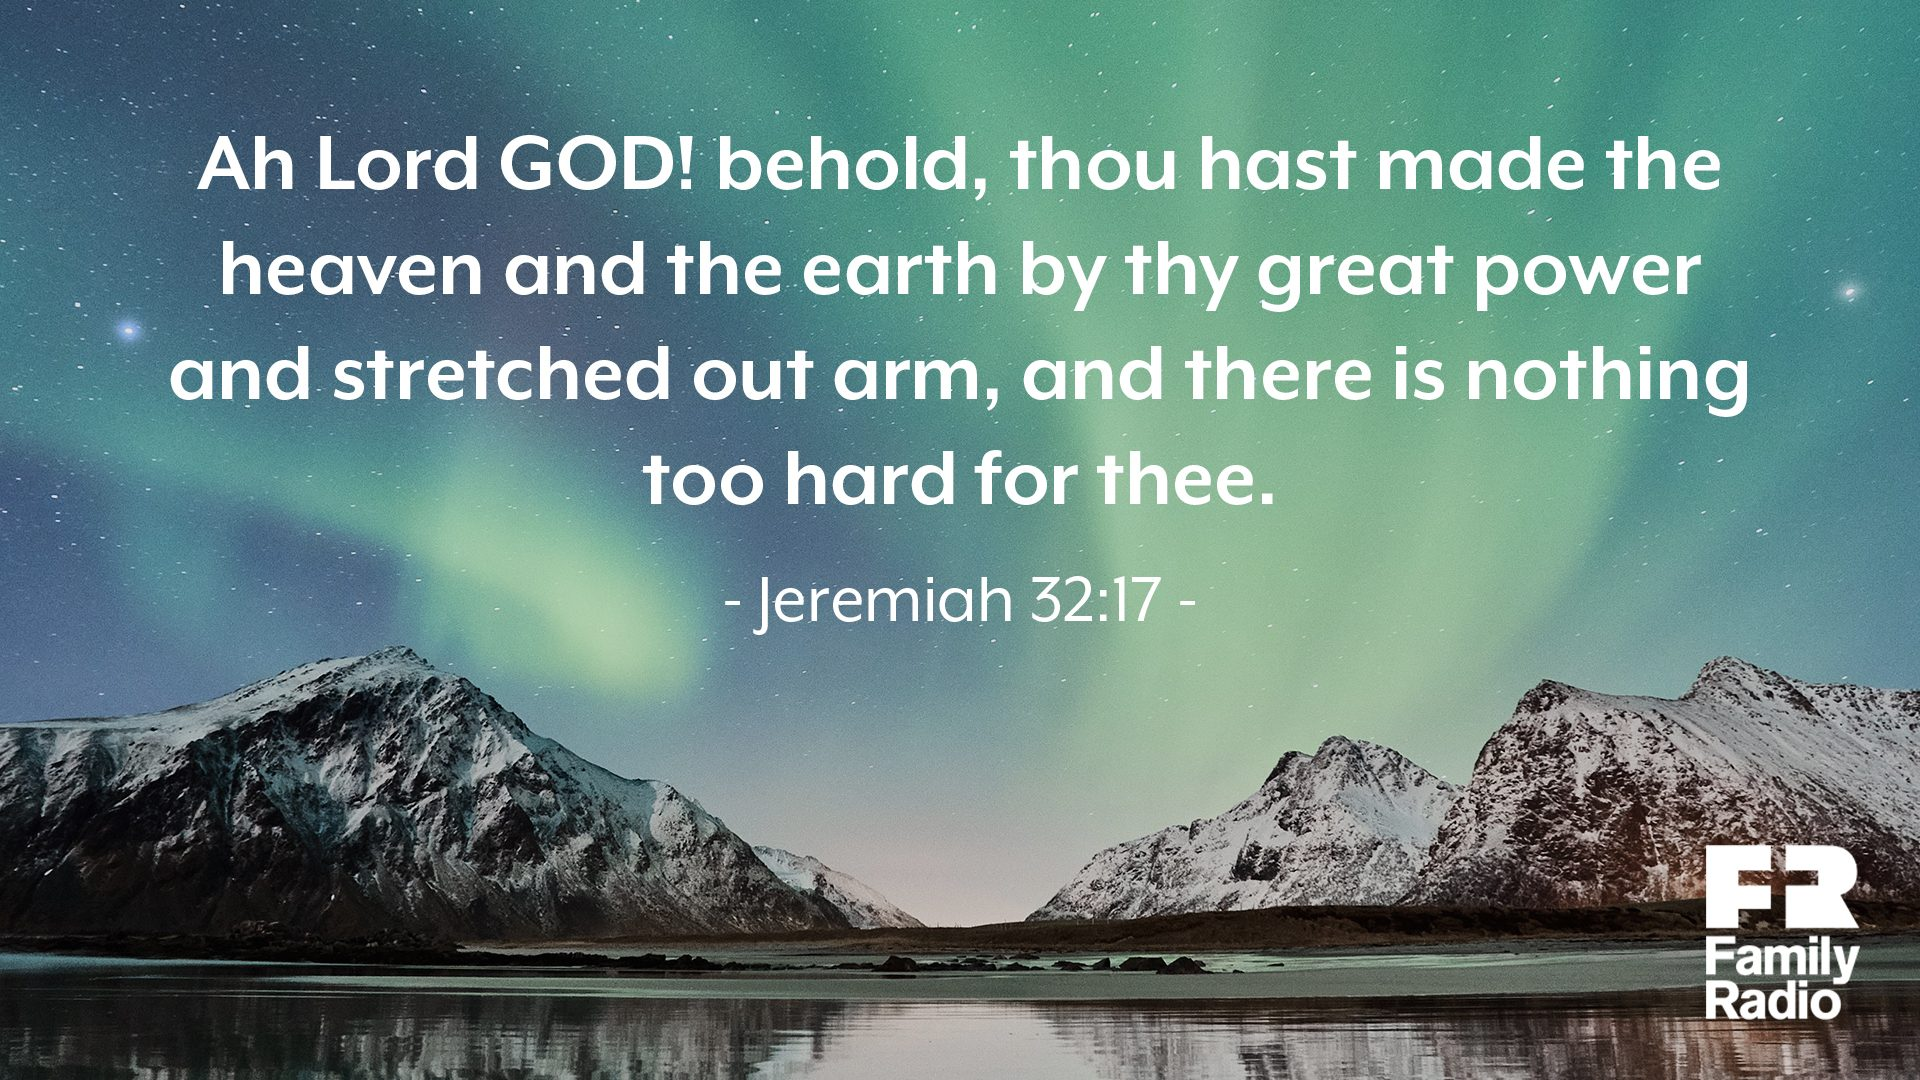 """Ah Lord GOD! behold, thou hast made the heaven and the earth by thy great power and stretched out arm, and there is nothing too hard for thee."""